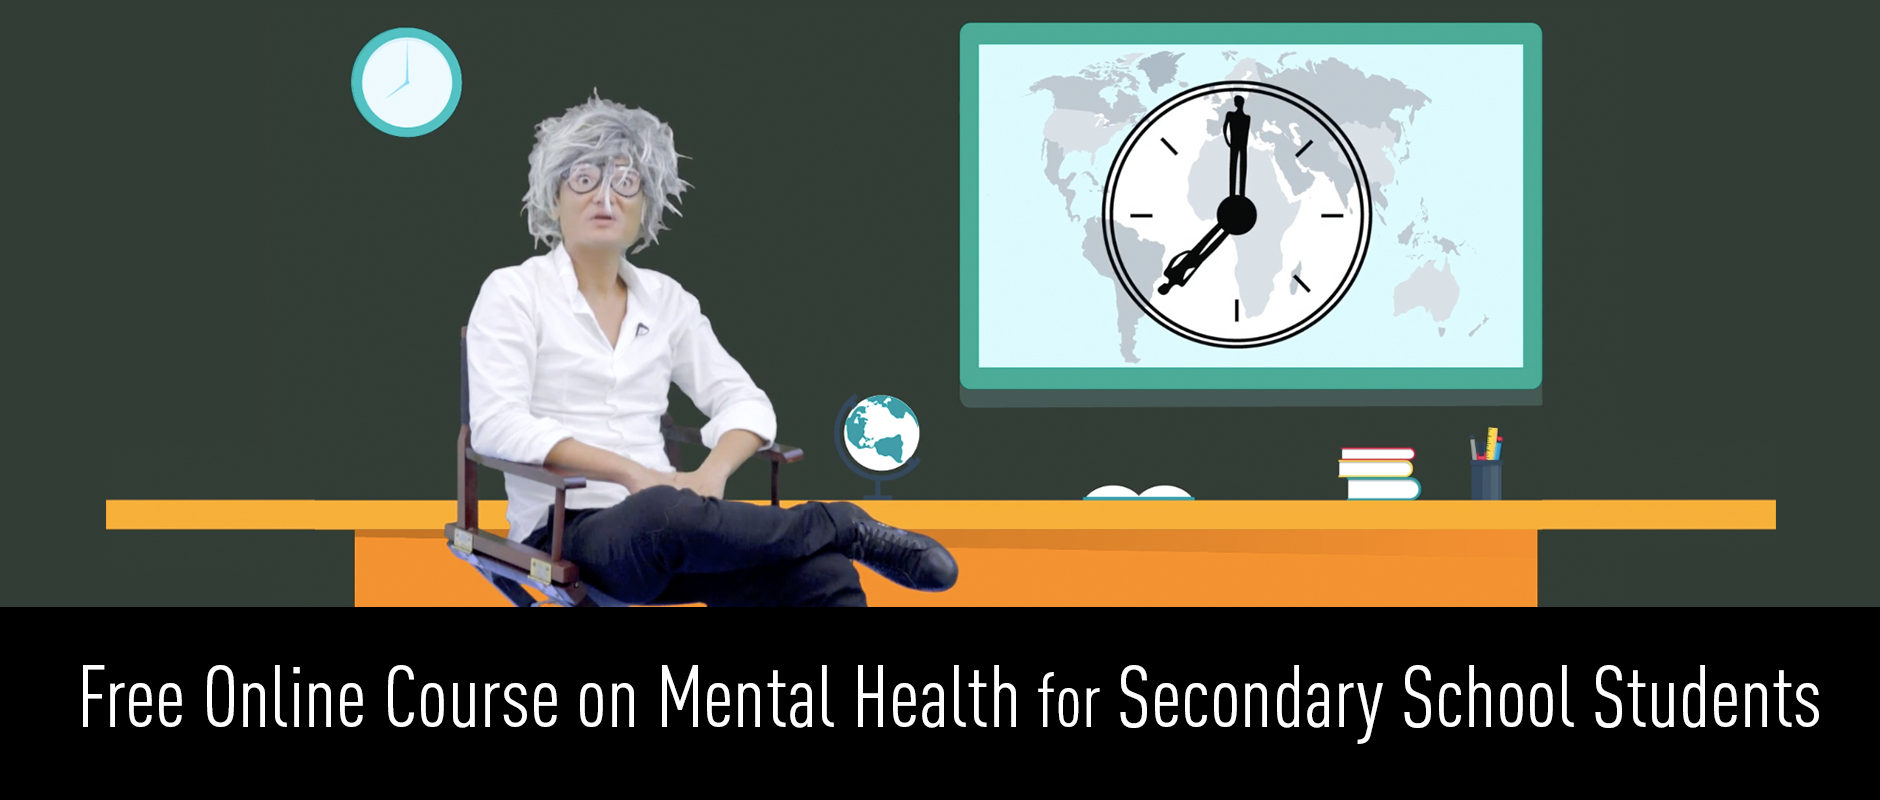 free online course on mental health for secondary school students